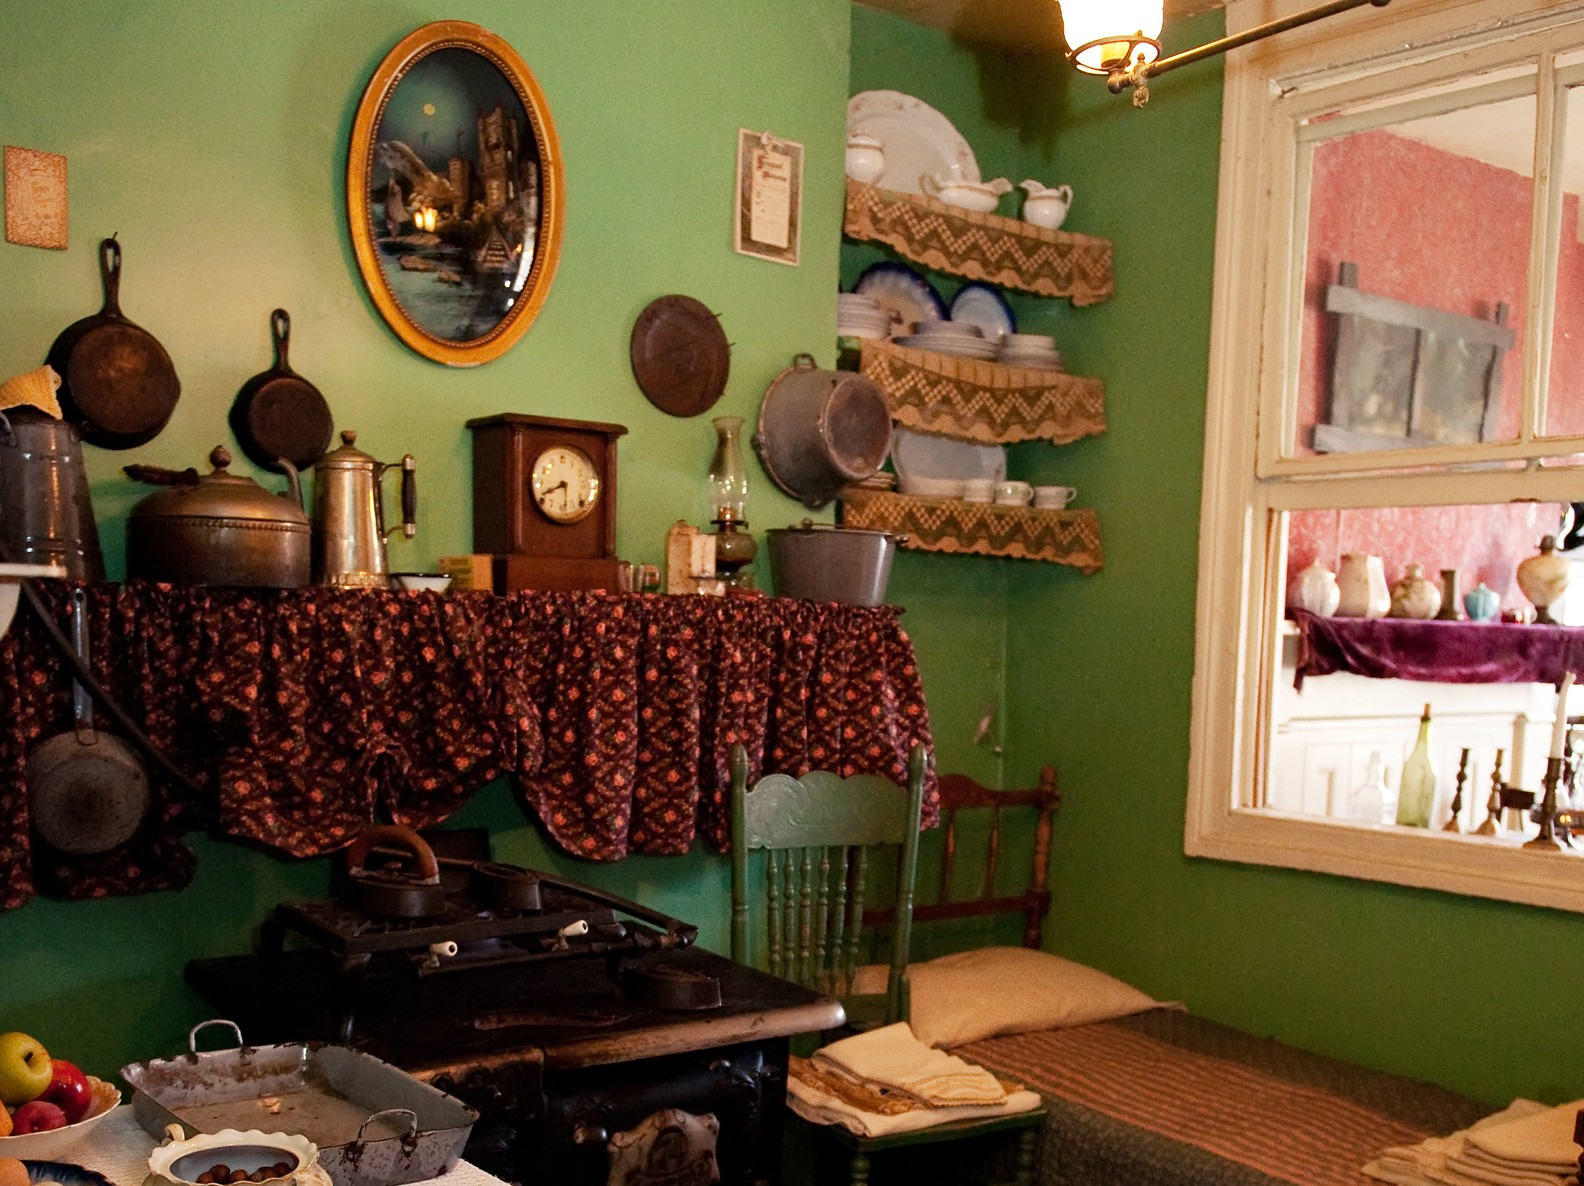 The recreated apartment kitchen of the Rogarshevsky family in 1911.